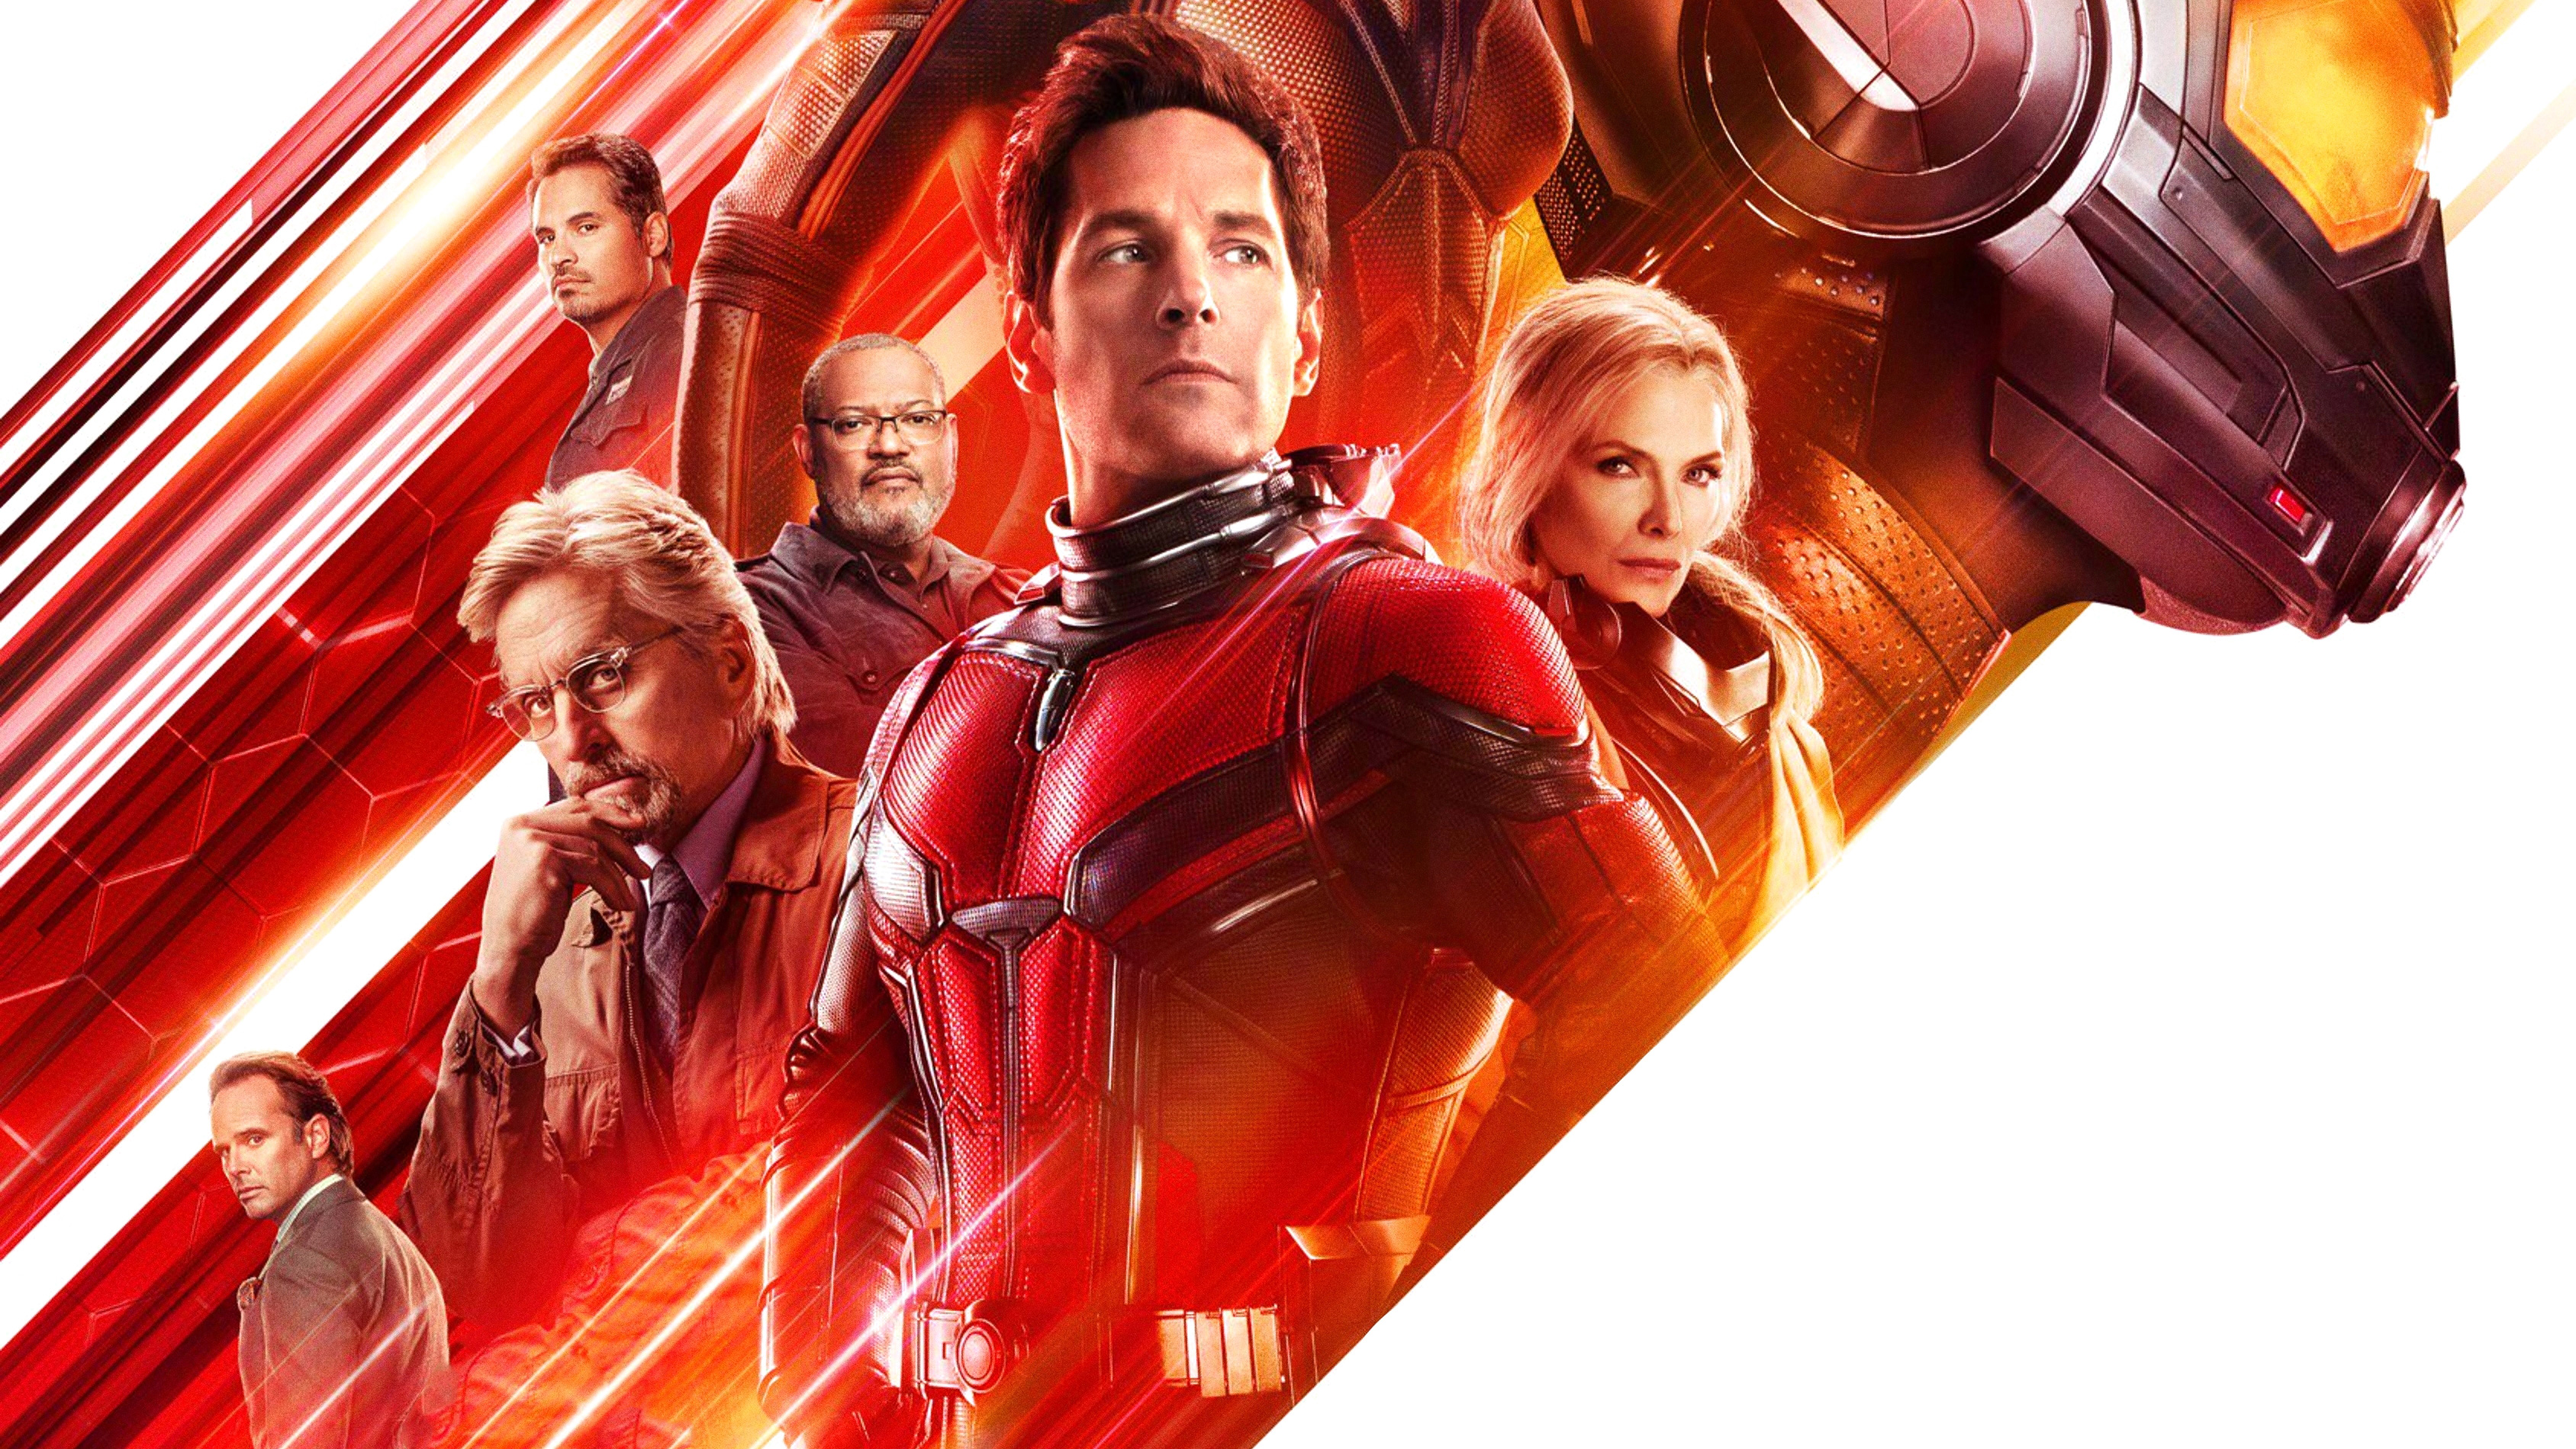 Ant Man Ant Man And The Wasp Bill Foster Evangeline Lilly Goliath Marvel Comics Hank Pym Hope Pym Ja 3376x1899